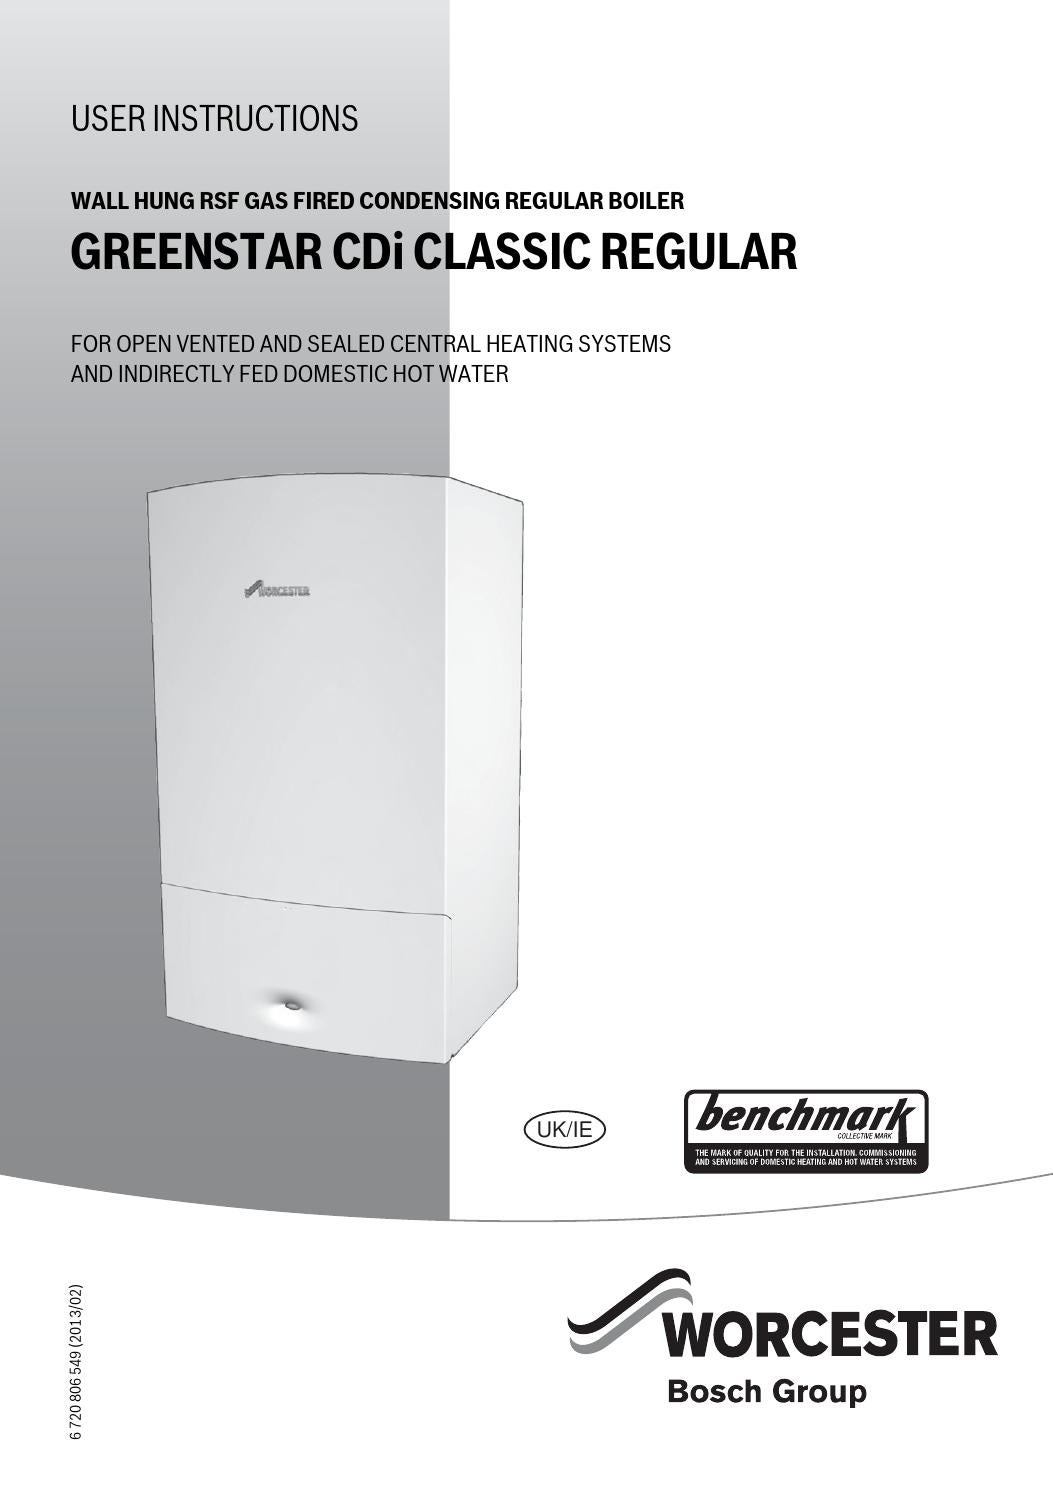 Worcester Boiler Fault Codes >> Worcester greenstar cdi classic regular user manual by Sophie Leigh - Issuu